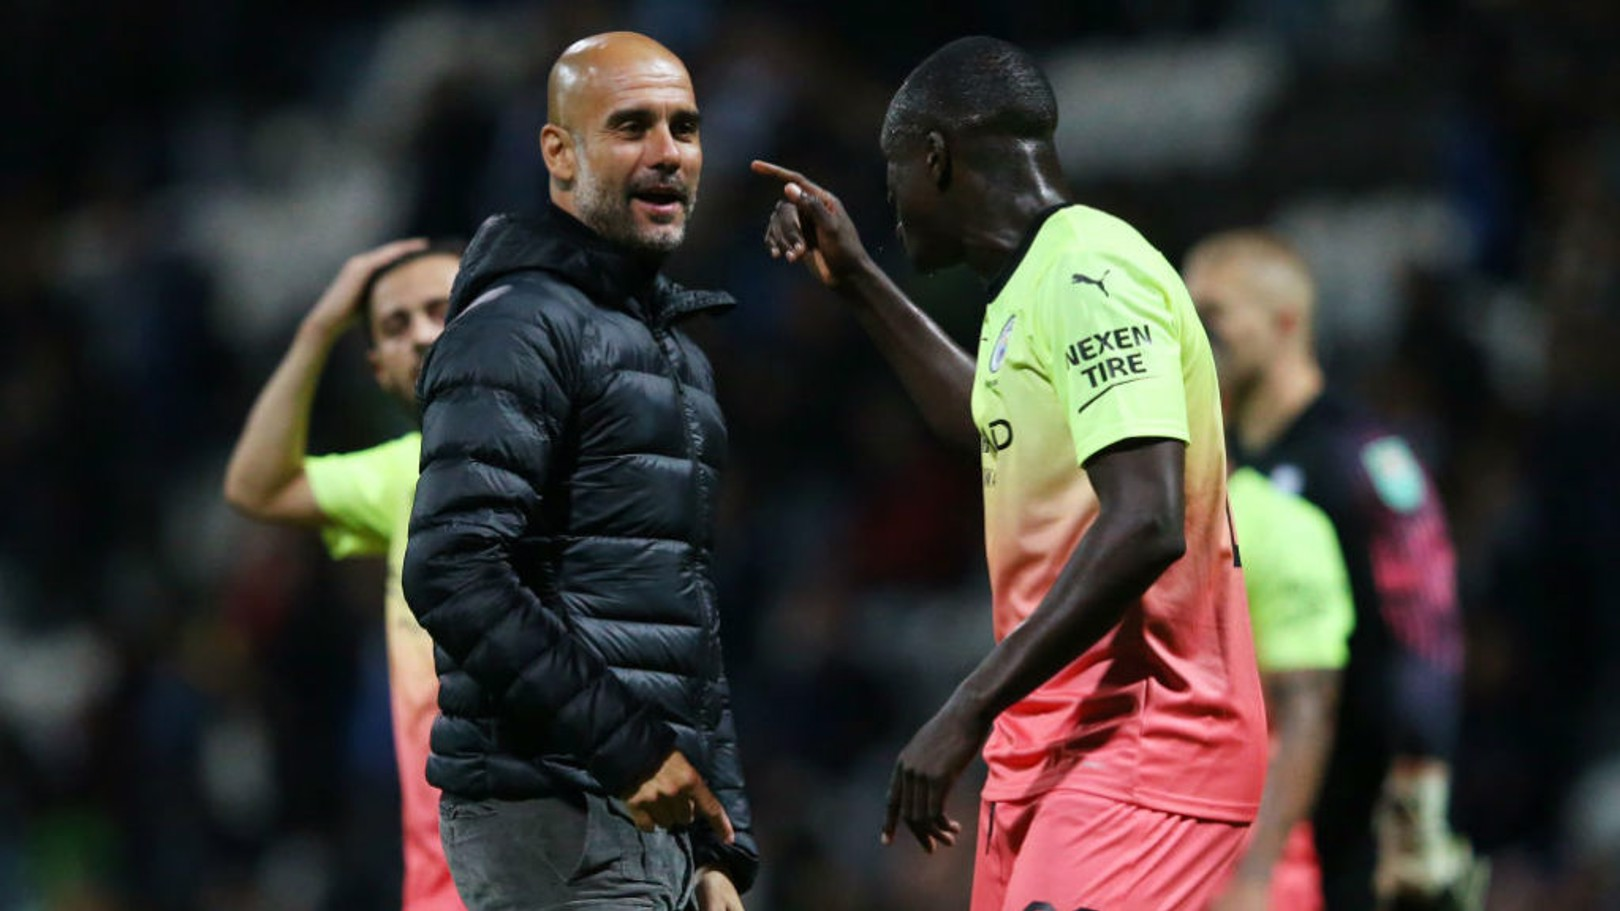 TOUGH JOB: Mendy says picking a City XI is not an easy task